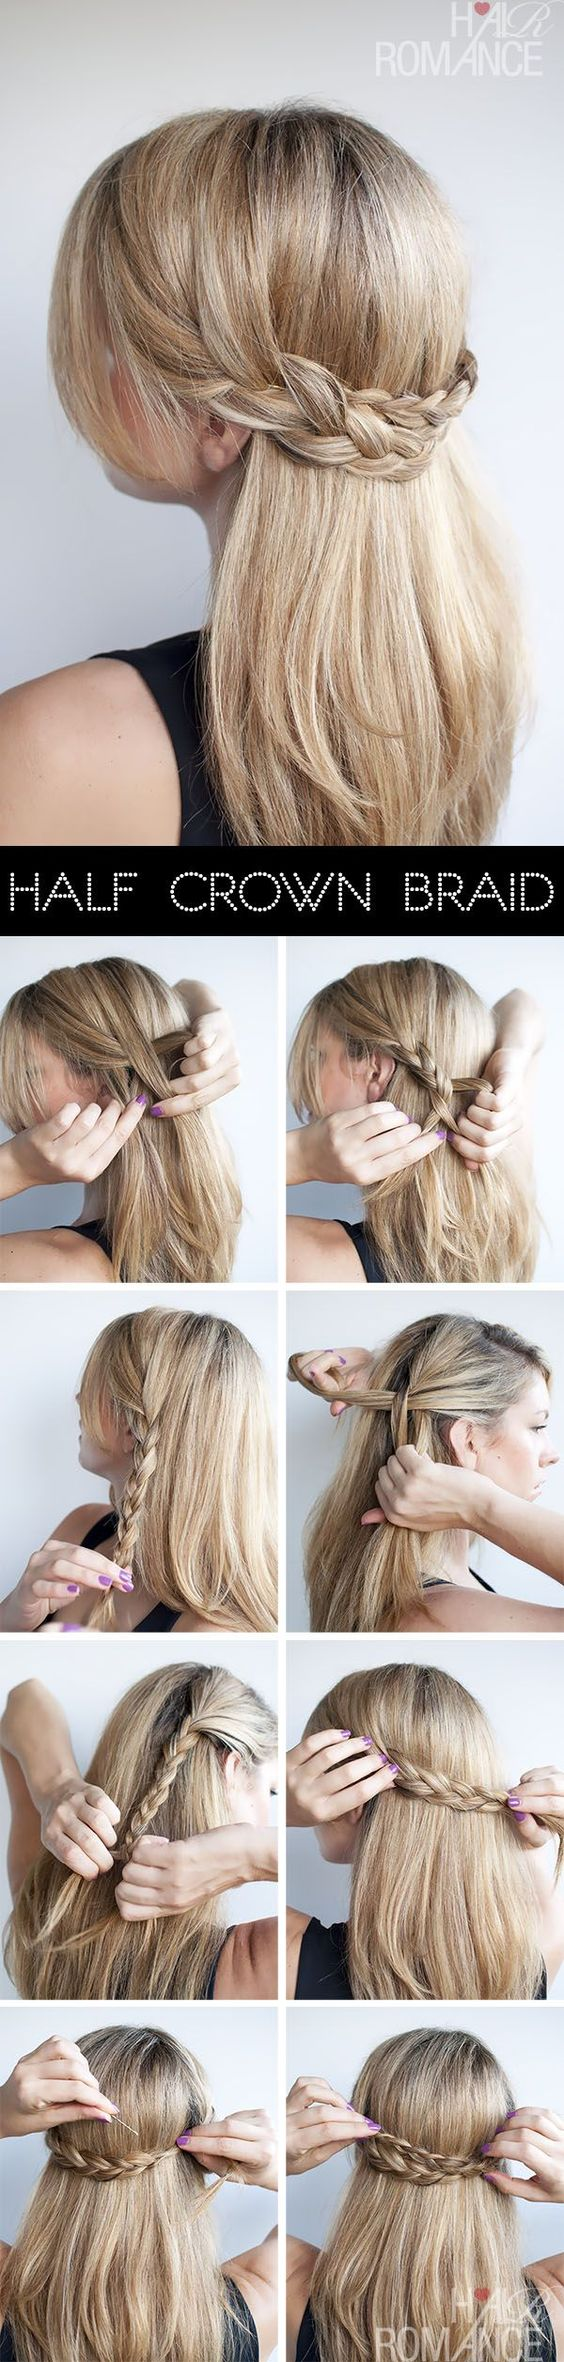 easy hairstyles, hairstyles, pinterest, tutorials, hairstyles for amareurs